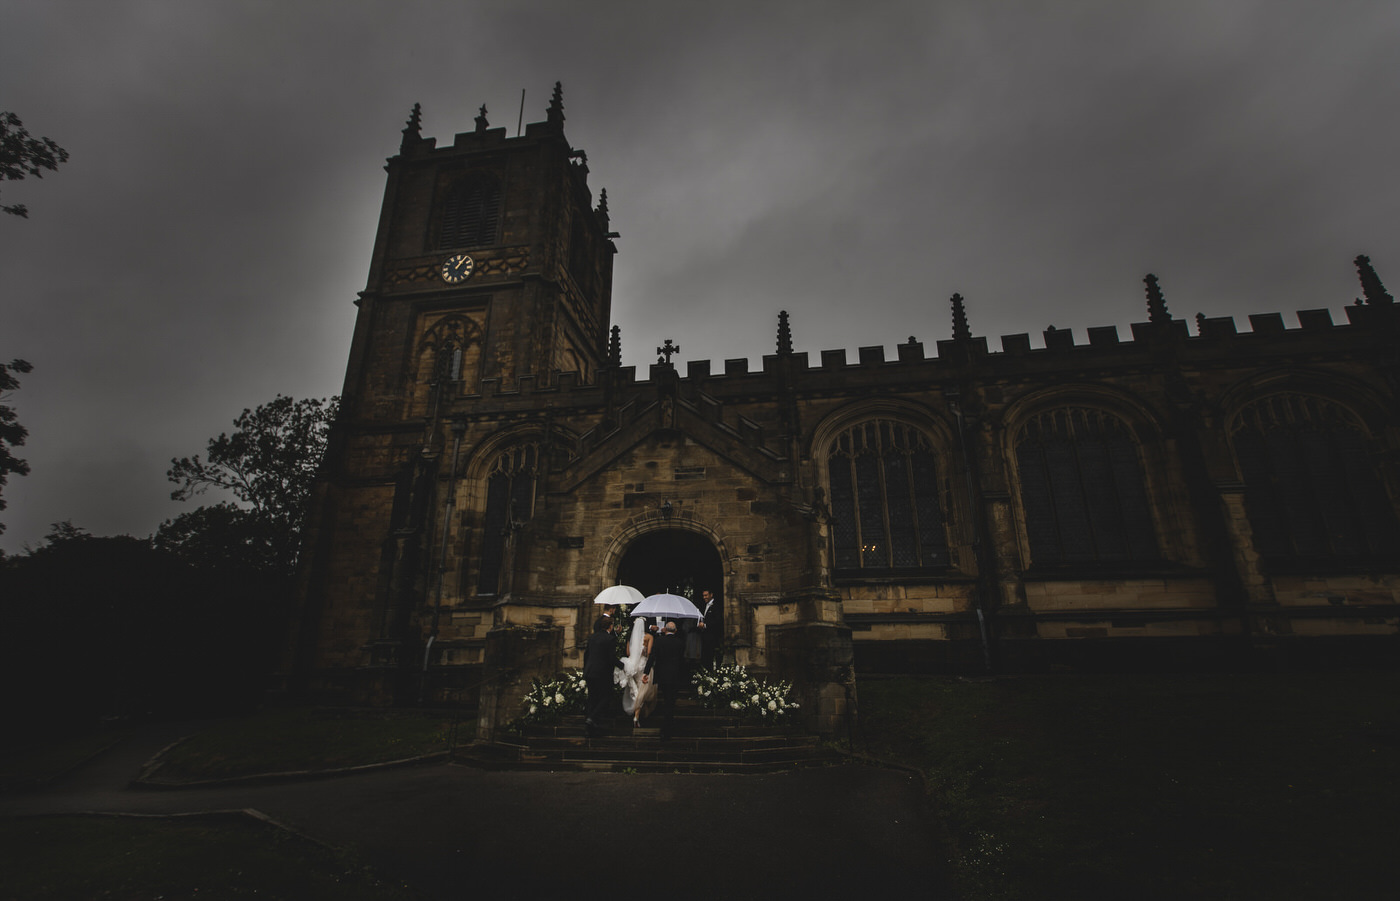 the bride climbs the steps to St Mary's Church in Mold for her wedding ceremony